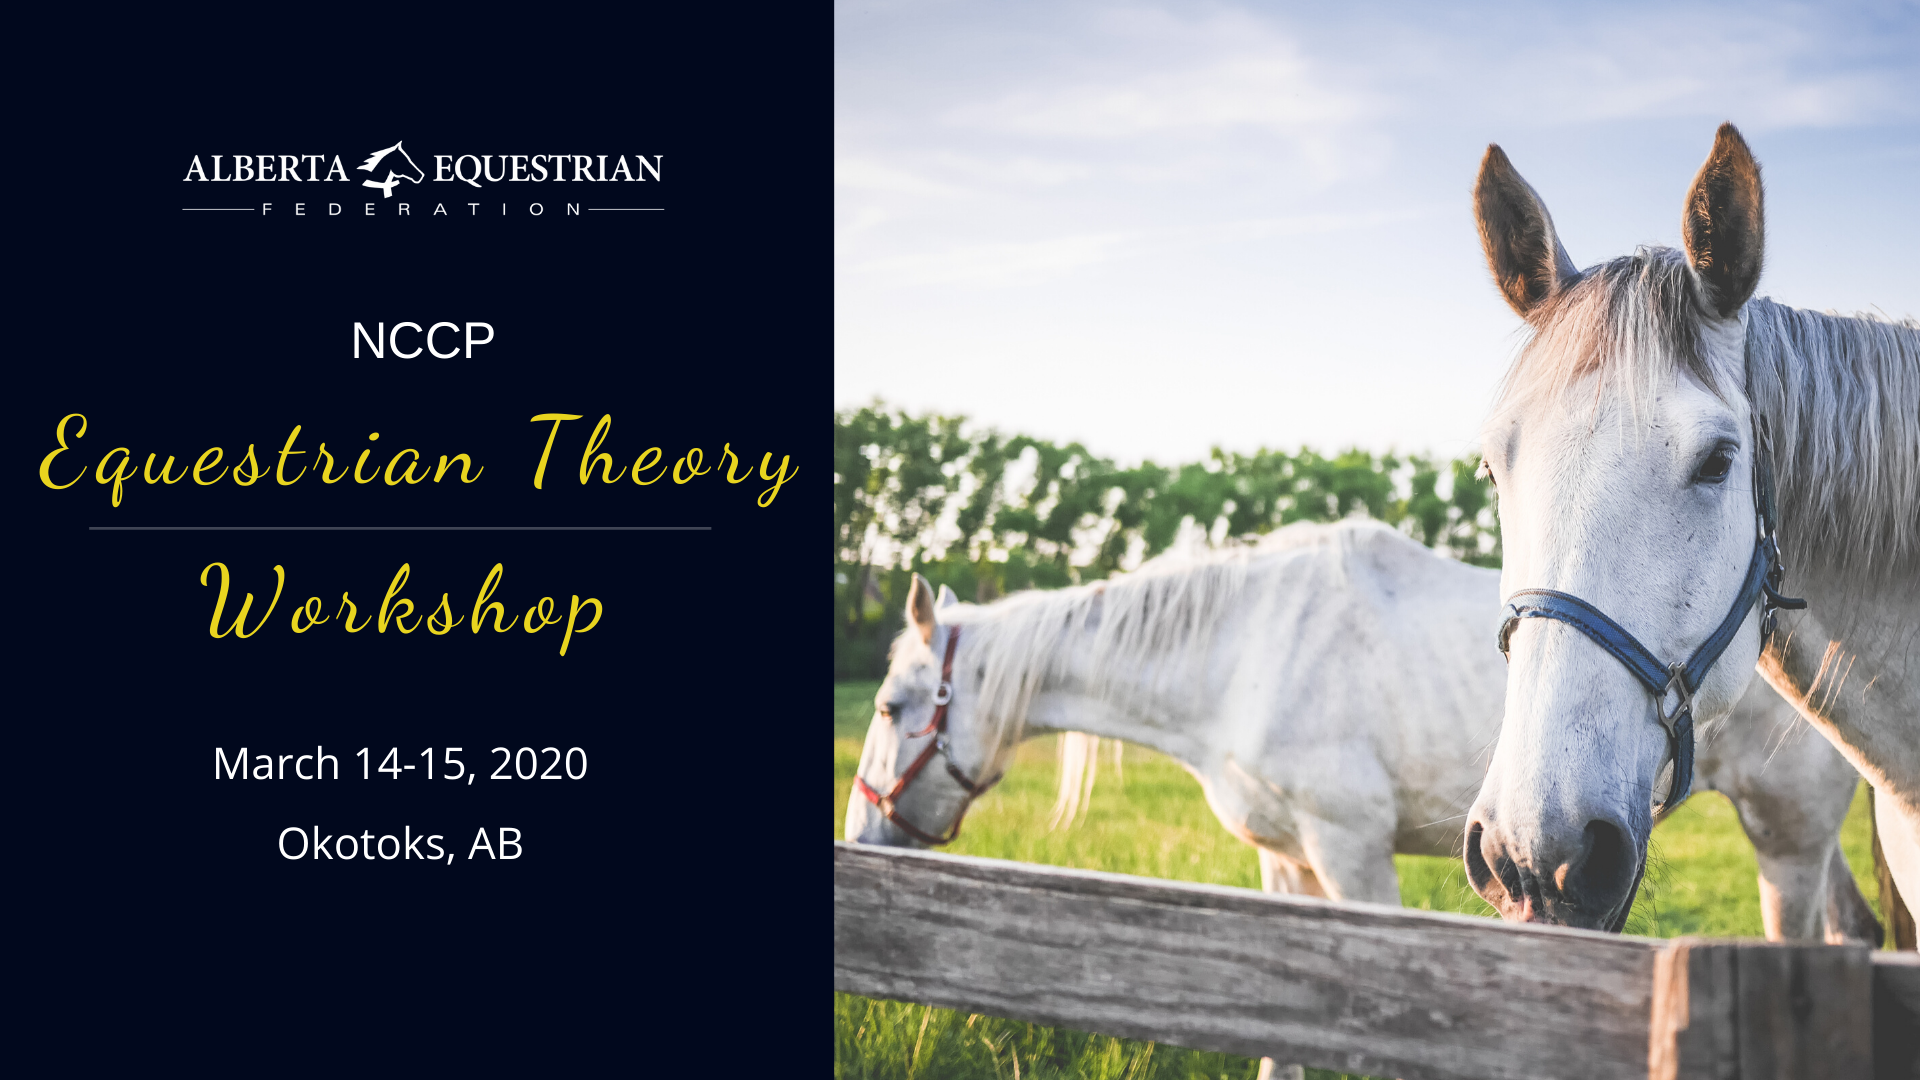 NCCP Equestrian Theory Workshop @ Lakeview Inns & Suites | Edmonton | Alberta | Canada